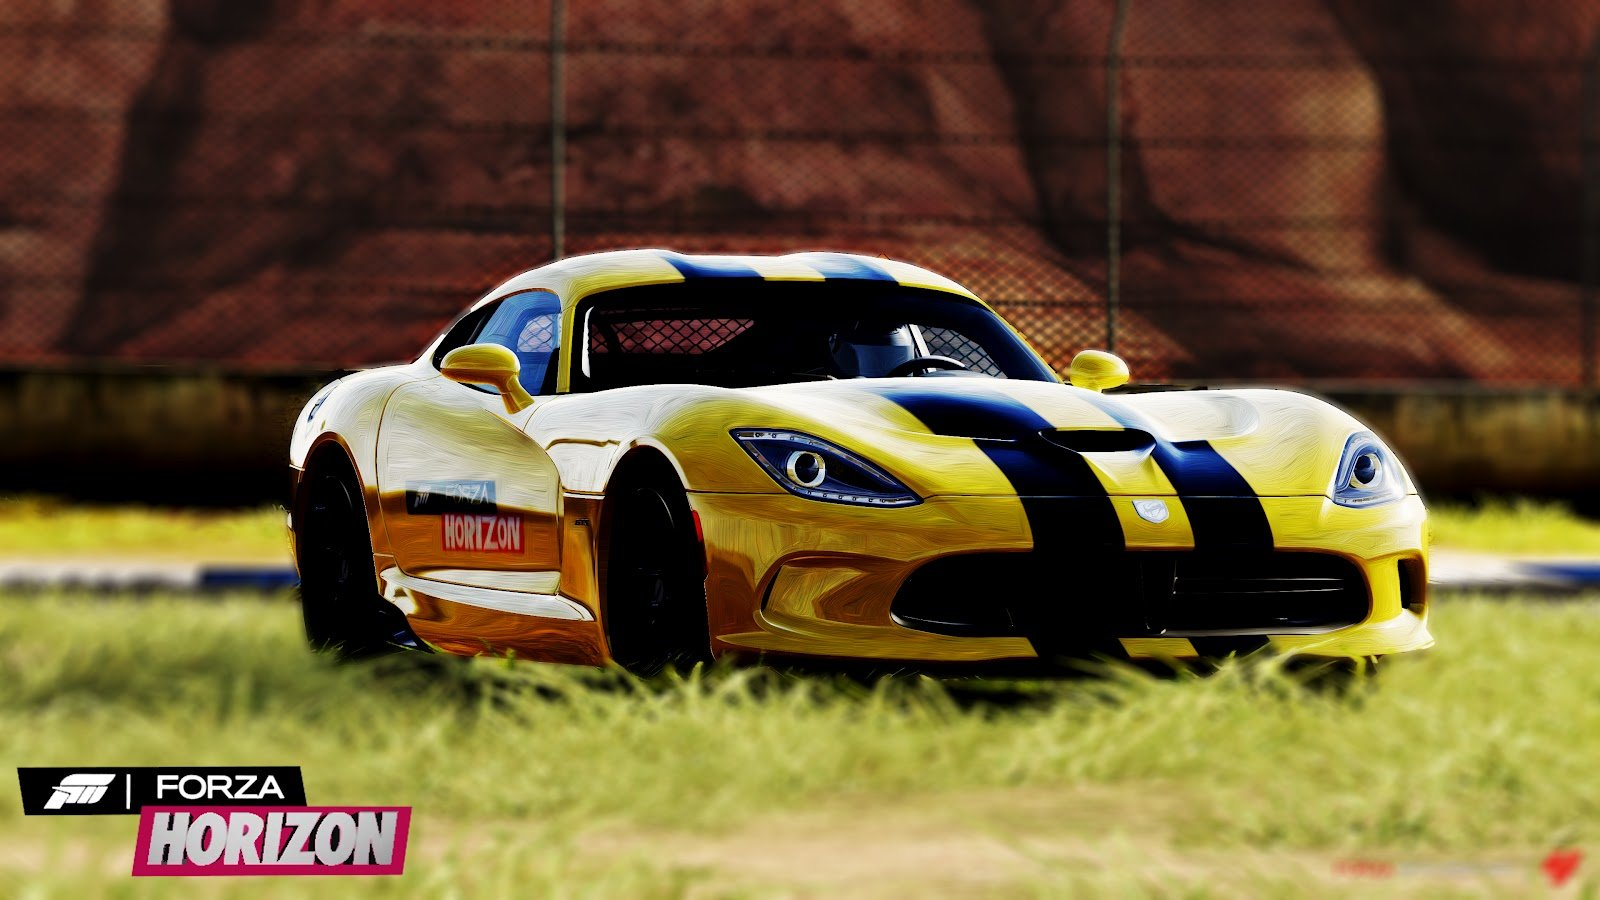 Free download Forza Horizon Wallpaper Hd Max wallpapers hd [1600x900] for your Desktop, Mobile & Tablet | Explore 49+ Forza 6 HD Wallpapers | Ford GT HD Wallpaper, Forza 5 Wallpaper, Forza Motorsport 6 Wallpaper